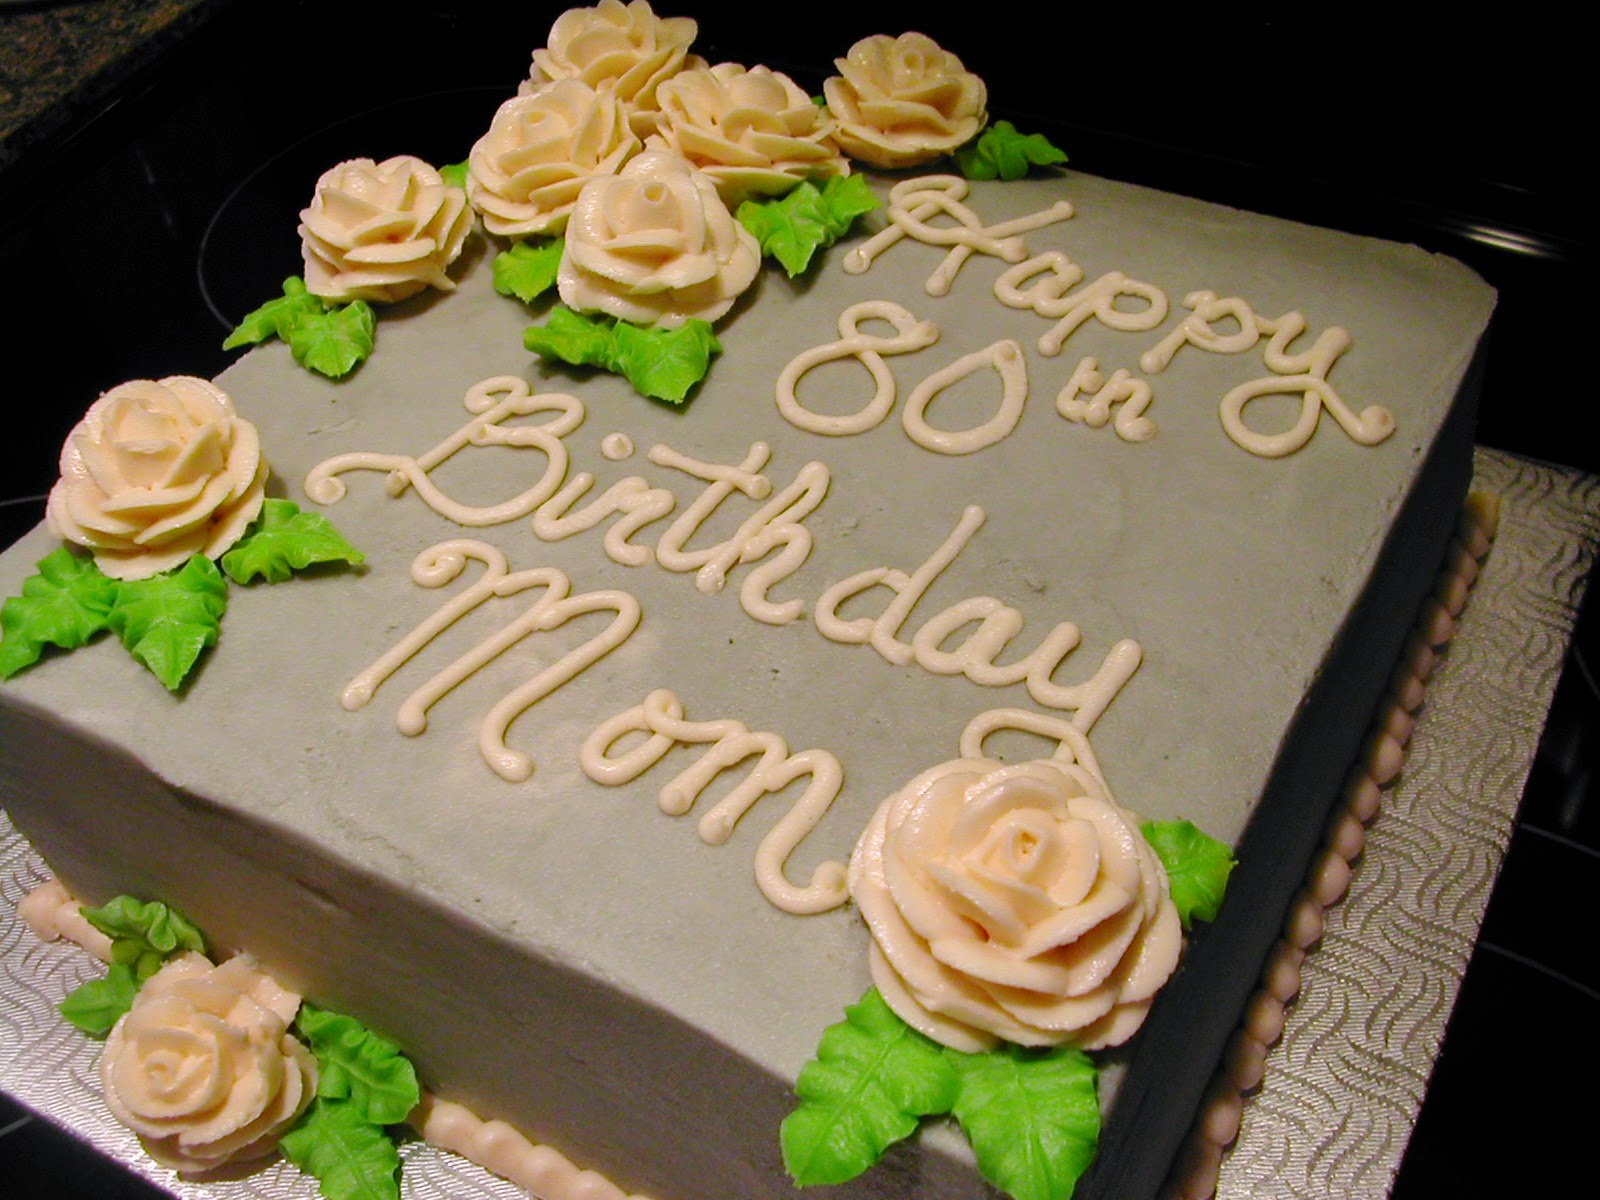 I See Both Her And Mum Whos 80th Birthday This Cake Is Helping To Celebrate As Elegant Women Hope Was Able Reflect That In